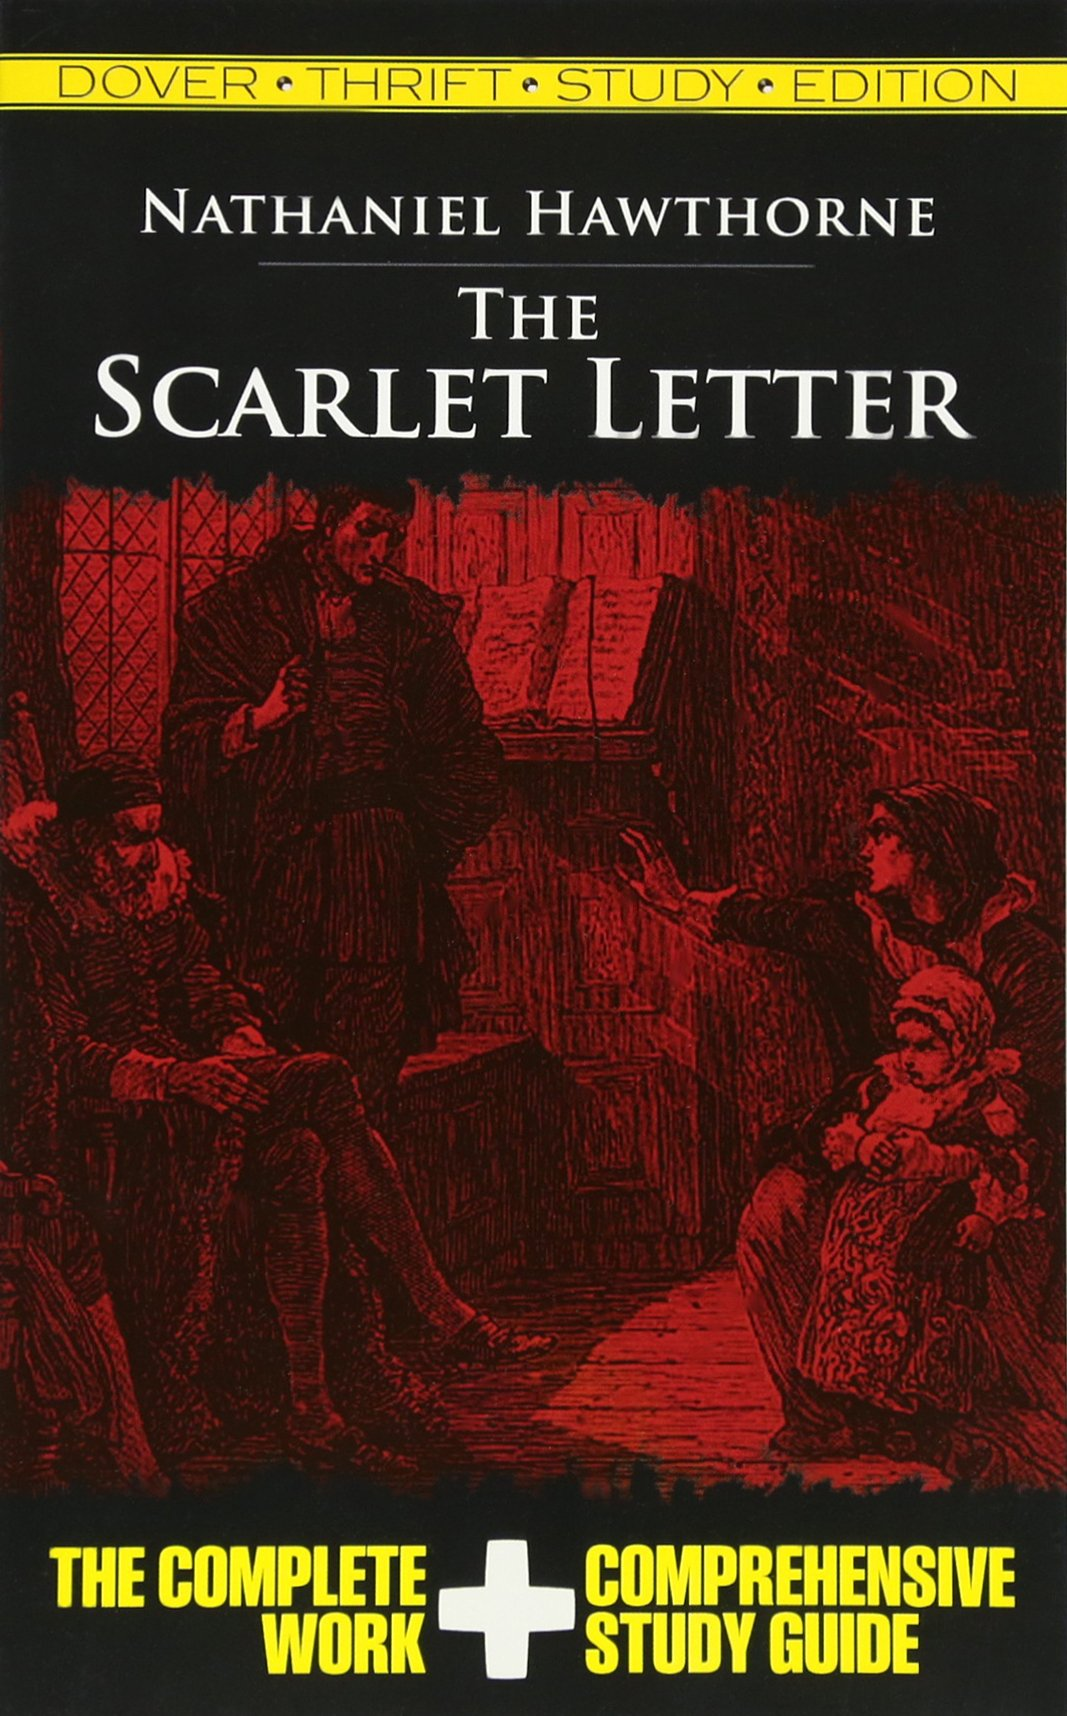 an analysis of nathaniel hawthorne novel the scarlet letter The romance novel, the scarlet letter, written by nathaniel hawthorne depicts the puritans to be hypocritical, harsh, and unforgiving through his use of.